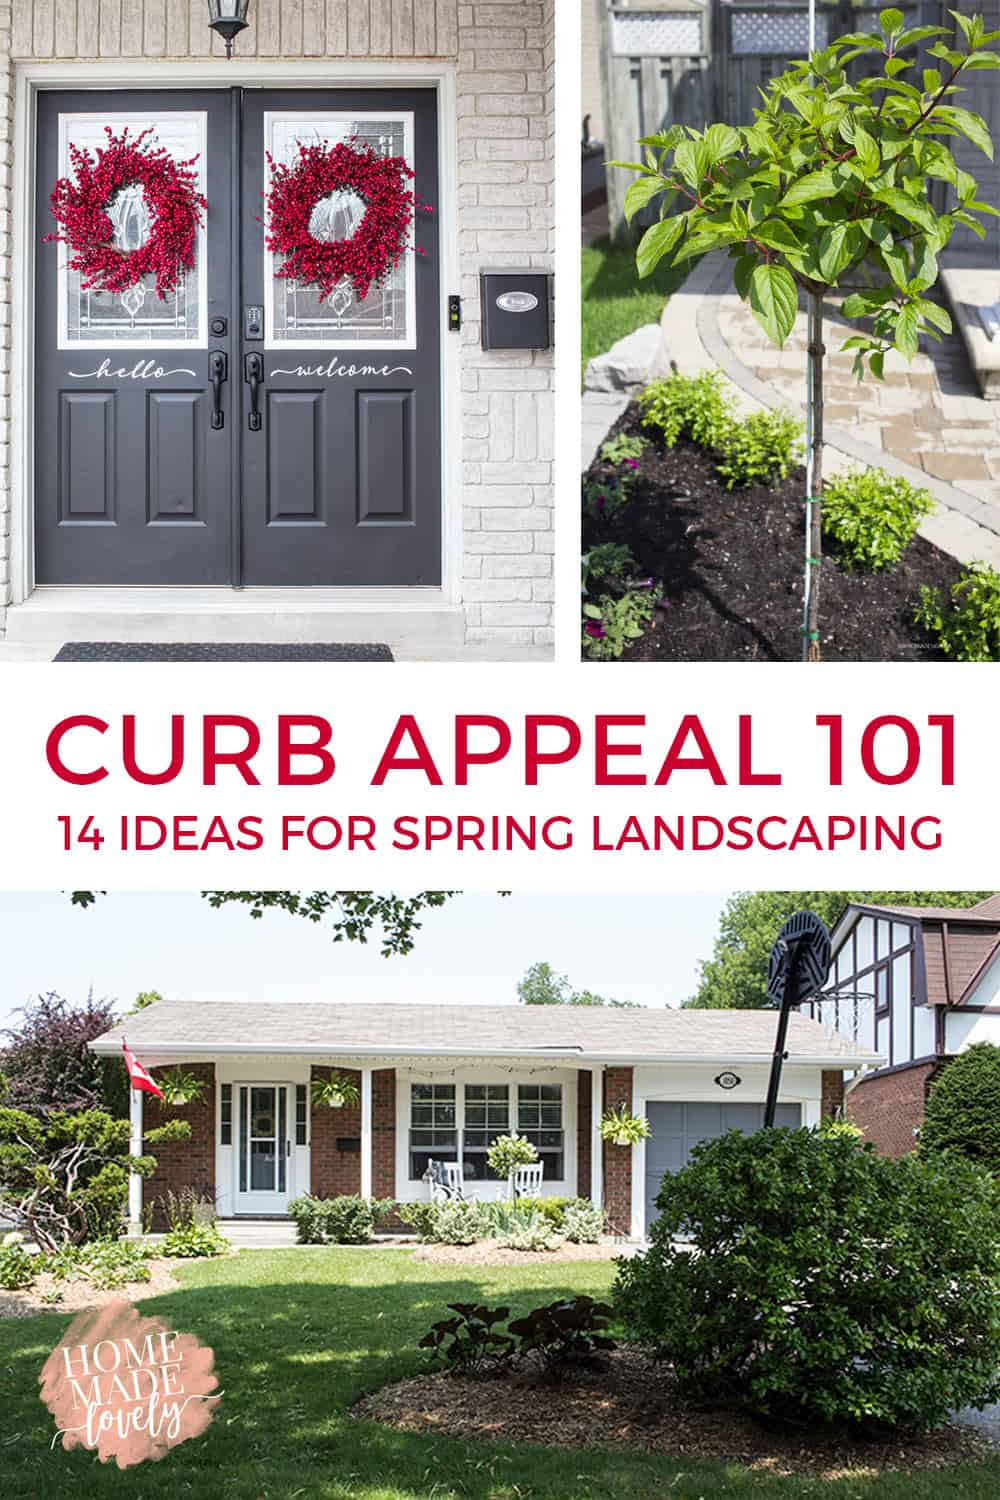 Lovable Wher Preparing To Sell Your Or You Just Want To Improve Curb Appeal Ideas Spring Landscaping Re Landscaping Front Yard Re Landscaping My Yard outdoor Re Landscaping Yard